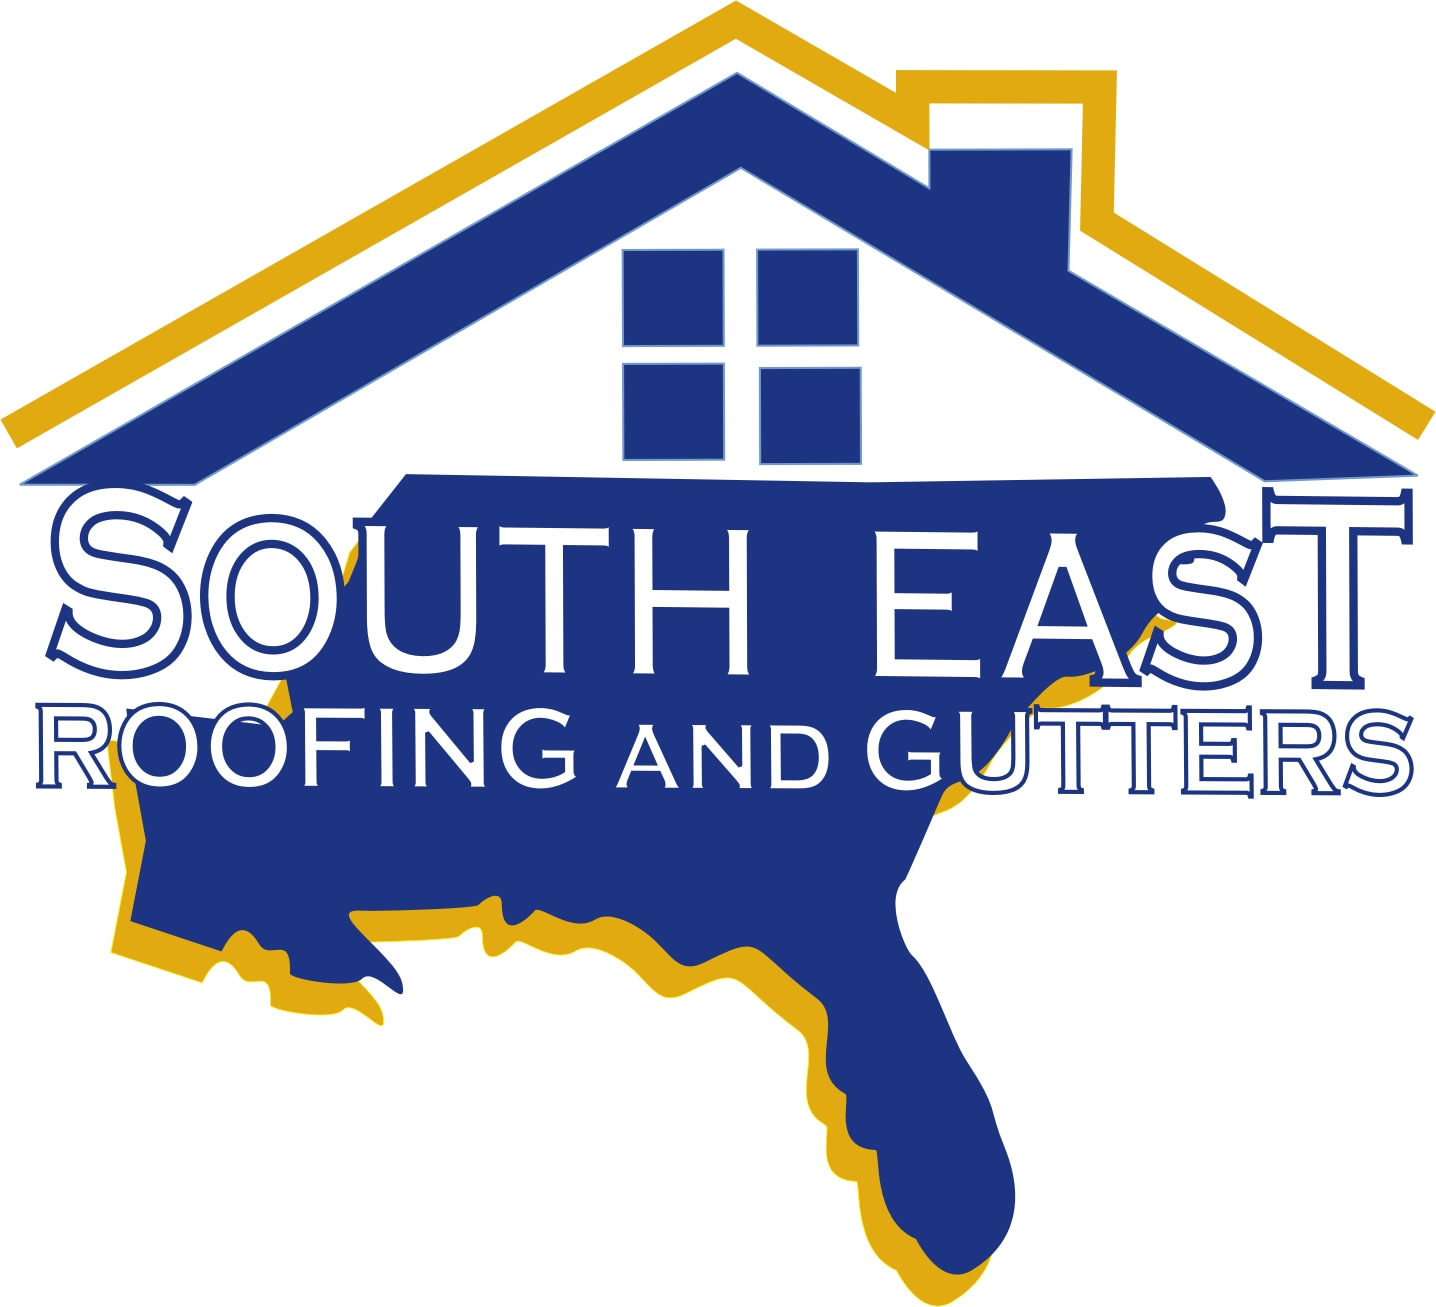 SOUTHEAST ROOFING AND GUTTERS, LLC